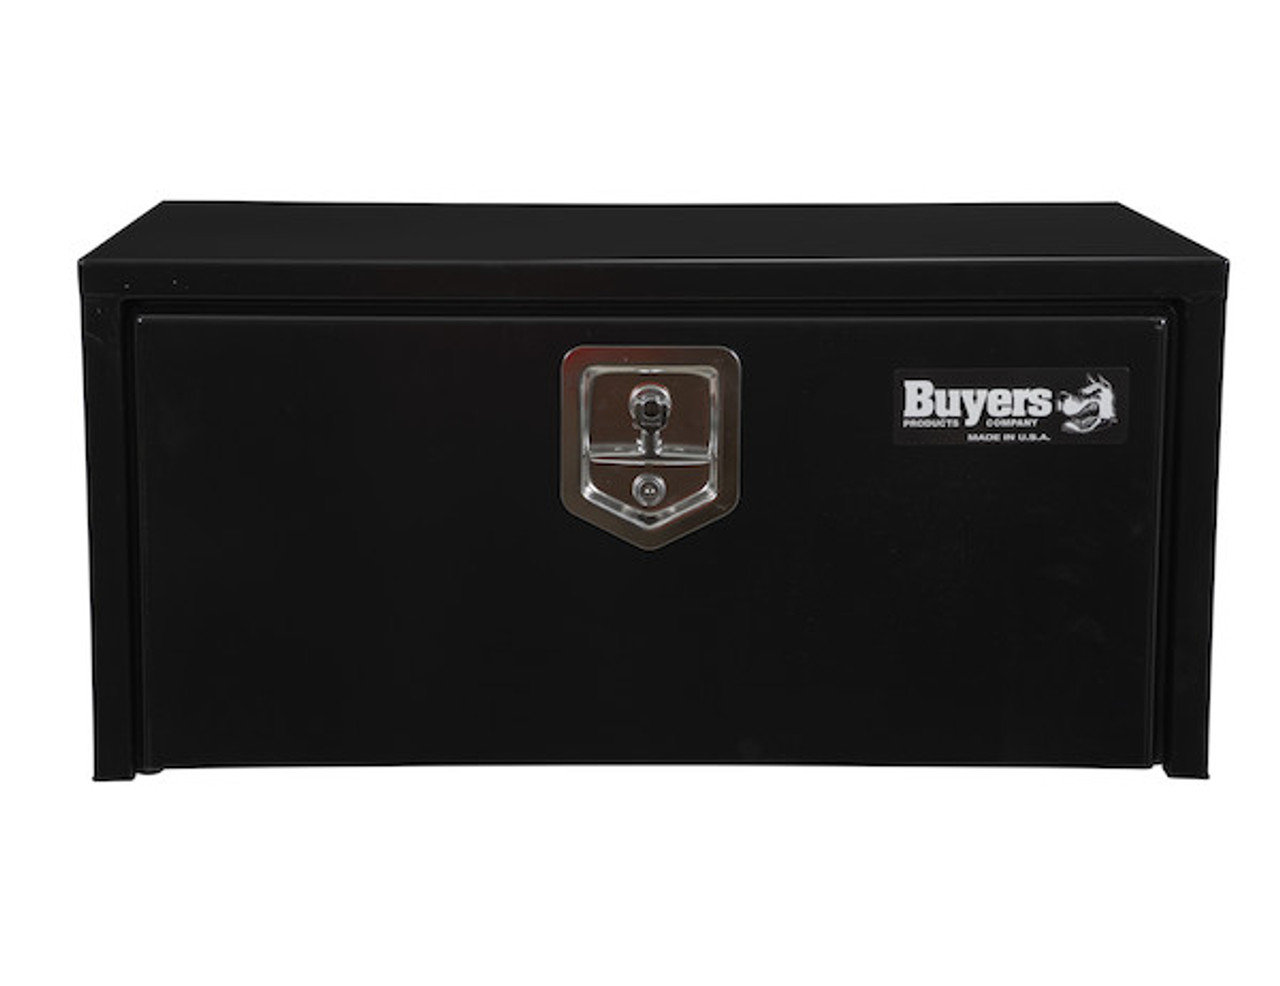 """1703304 BUYERS PRODUCTS BLACK STEEL UNDERBODY TRUCK TOOL BOX WITH BUILT-IN SHELF 14""""HX16""""DX30""""W Picture # 1"""